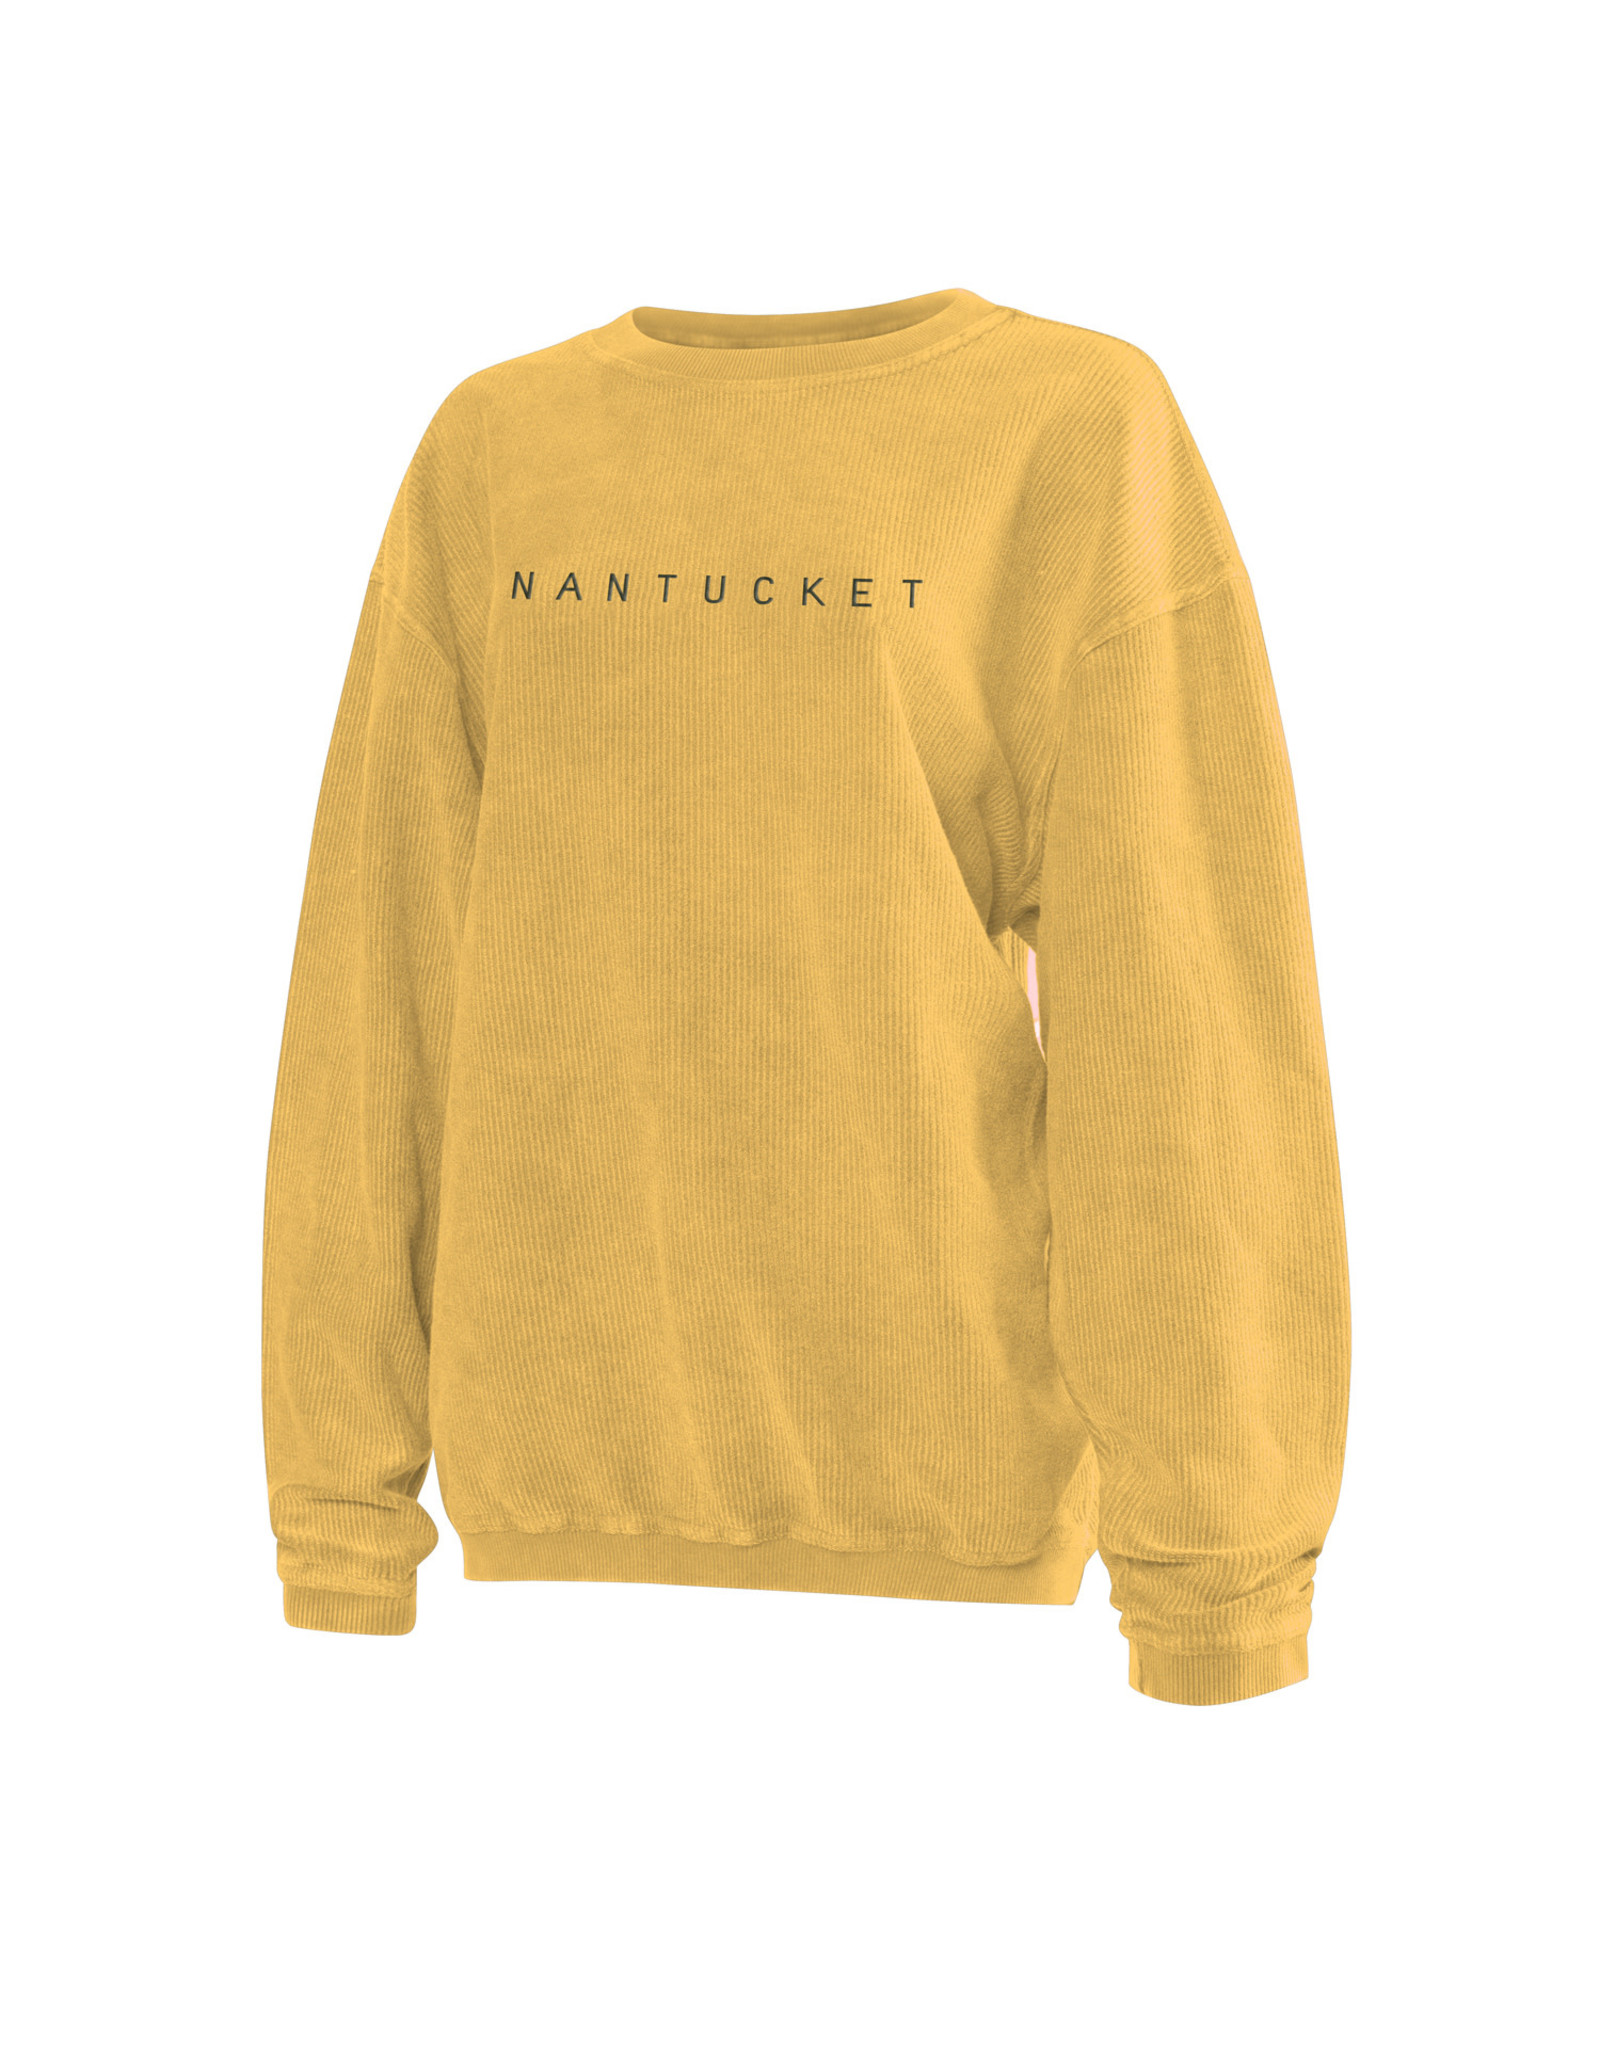 Chicka-D Chicka-D Ladies Crew Neck Straight Nantucket